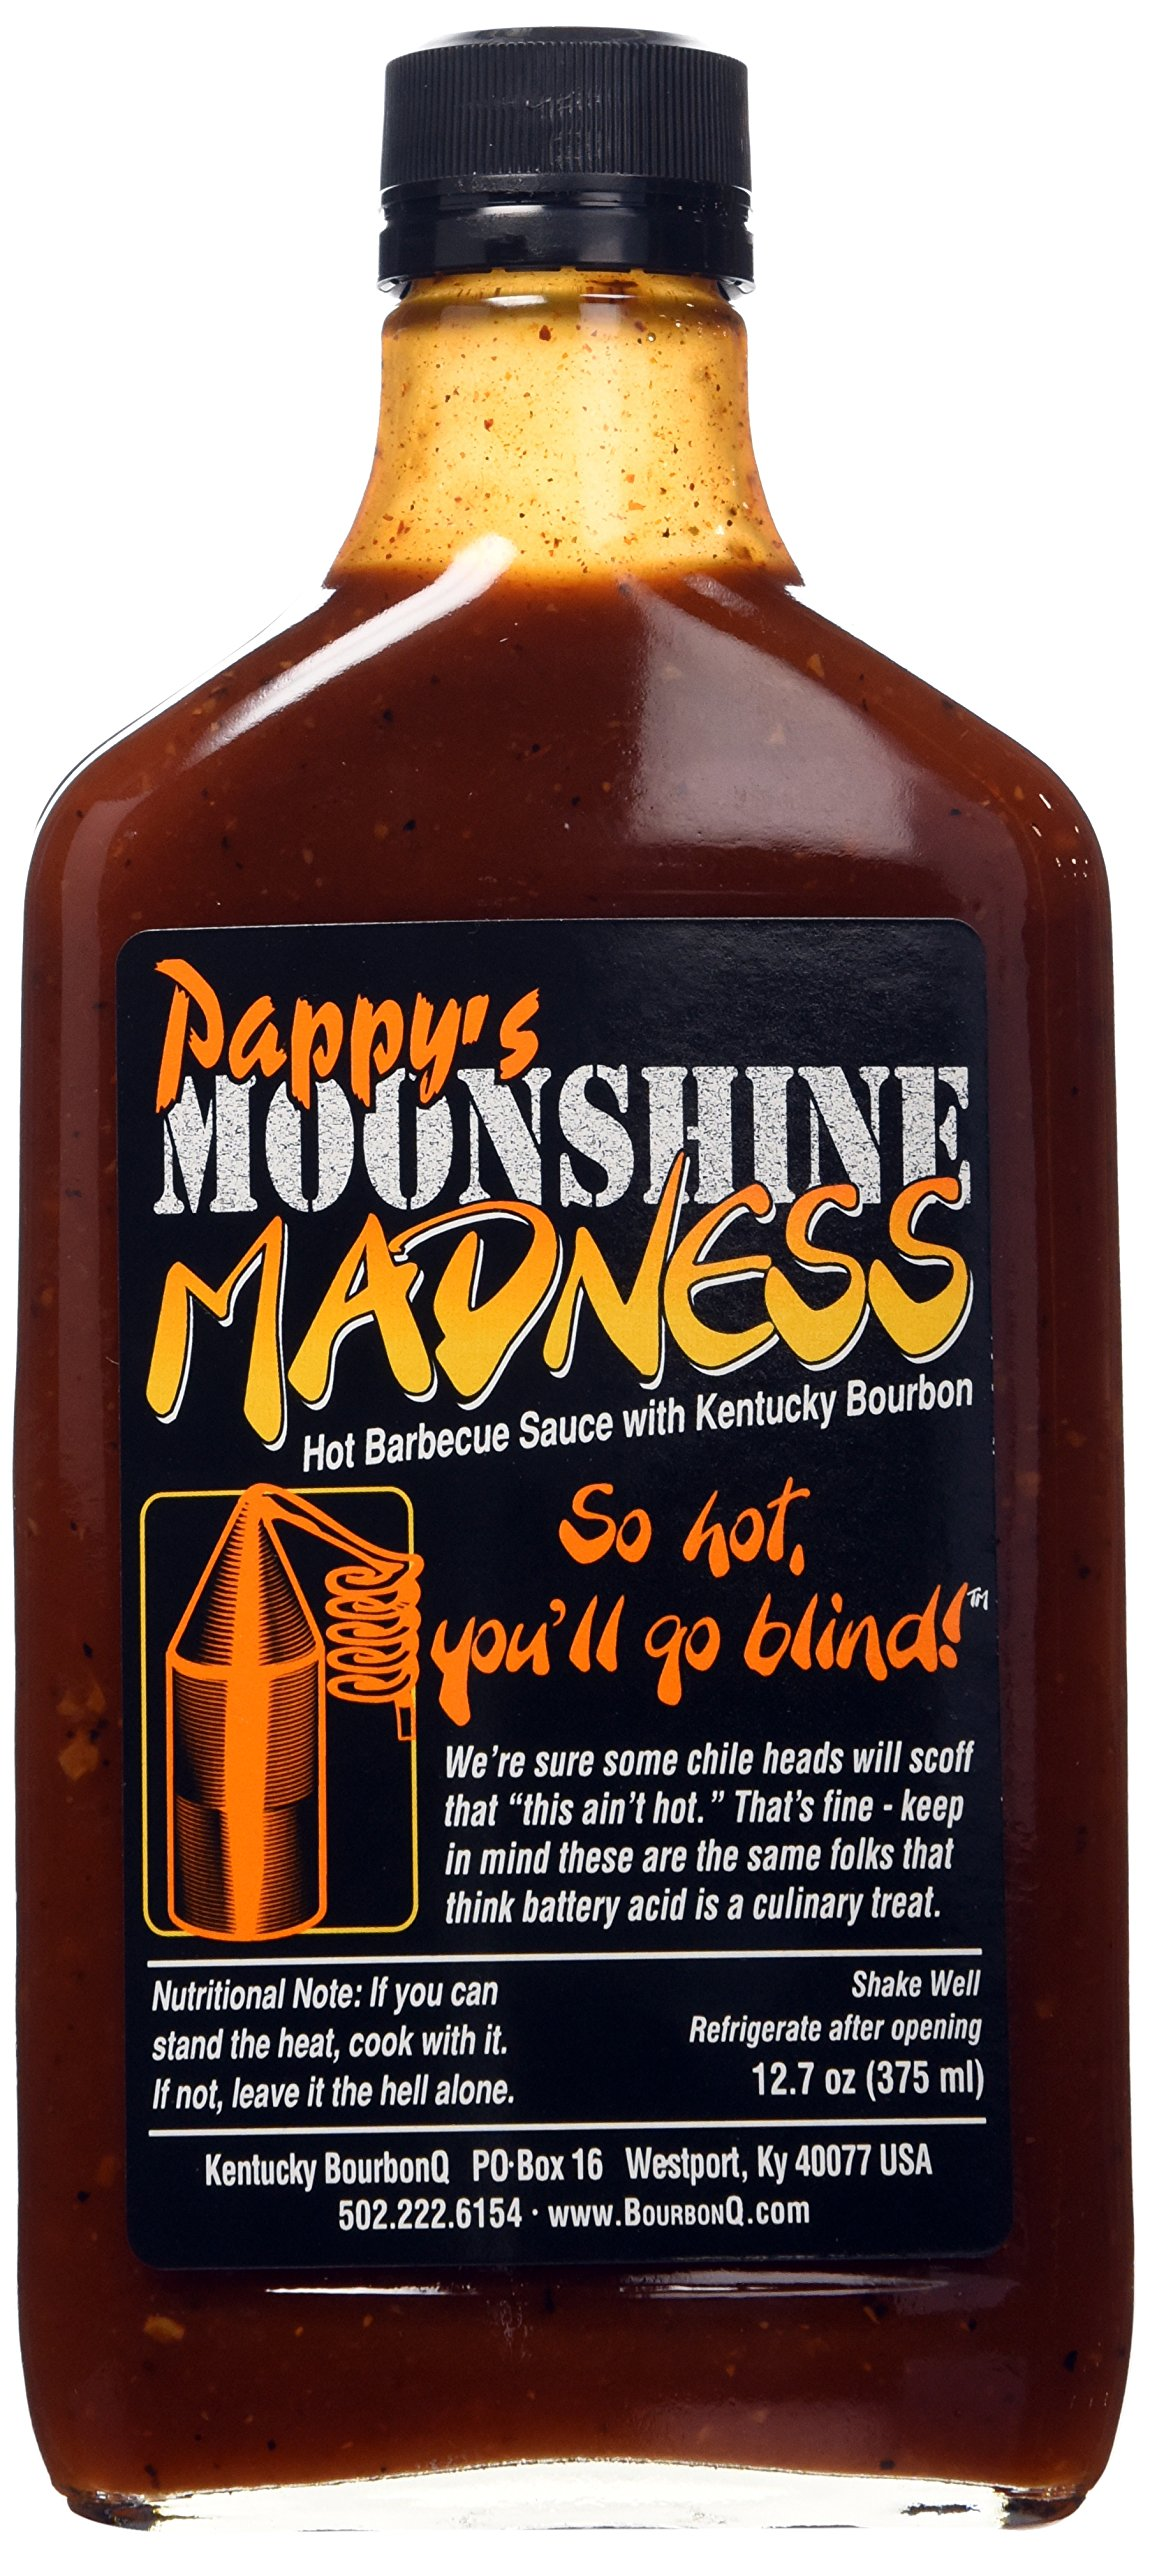 Pappy's Moonshine Madness Barbecue Sauce 12.7oz